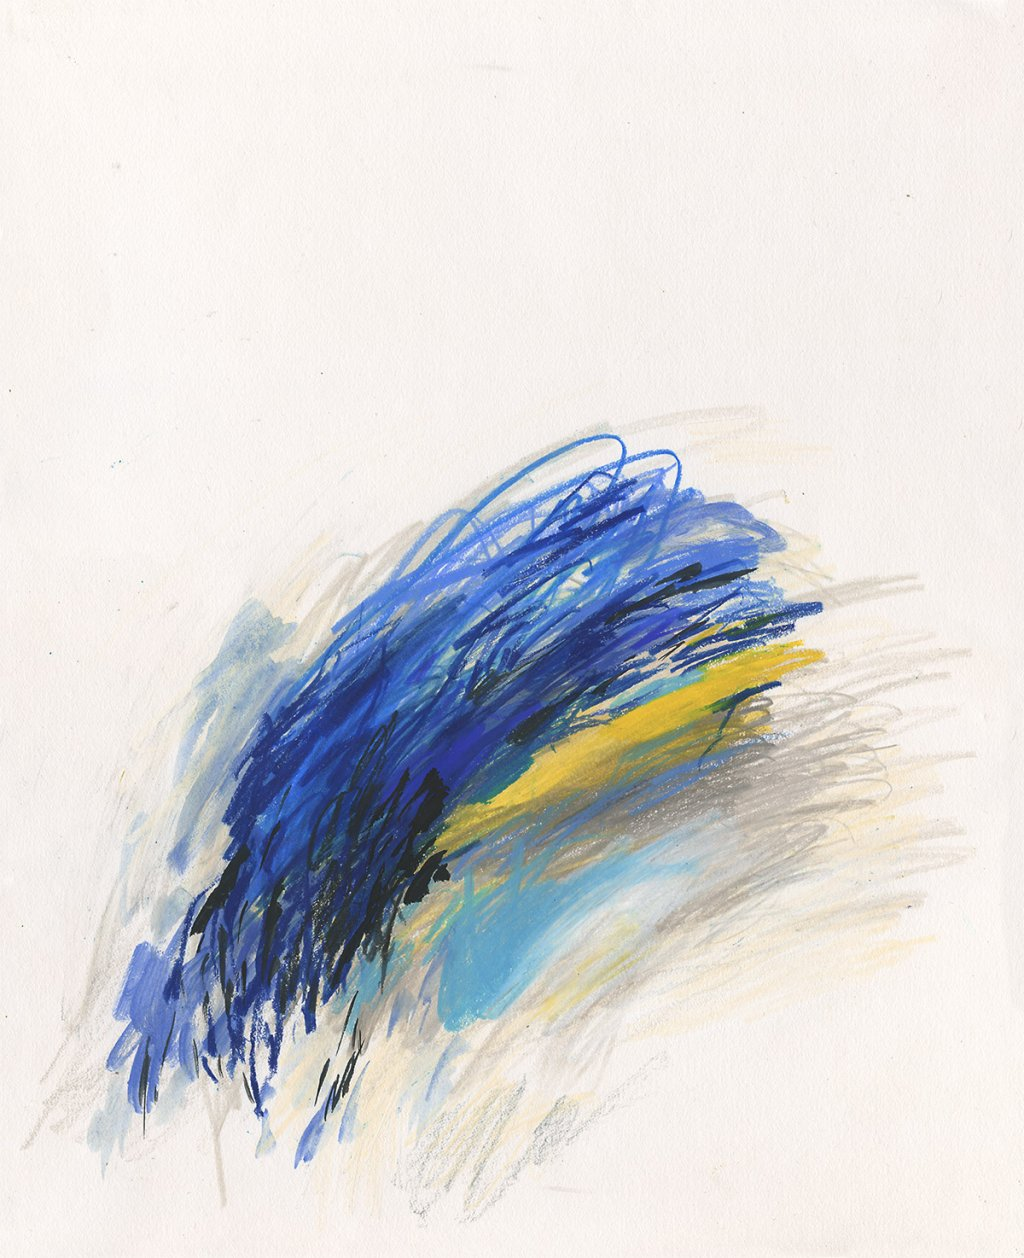 abstract blue and yellow painting